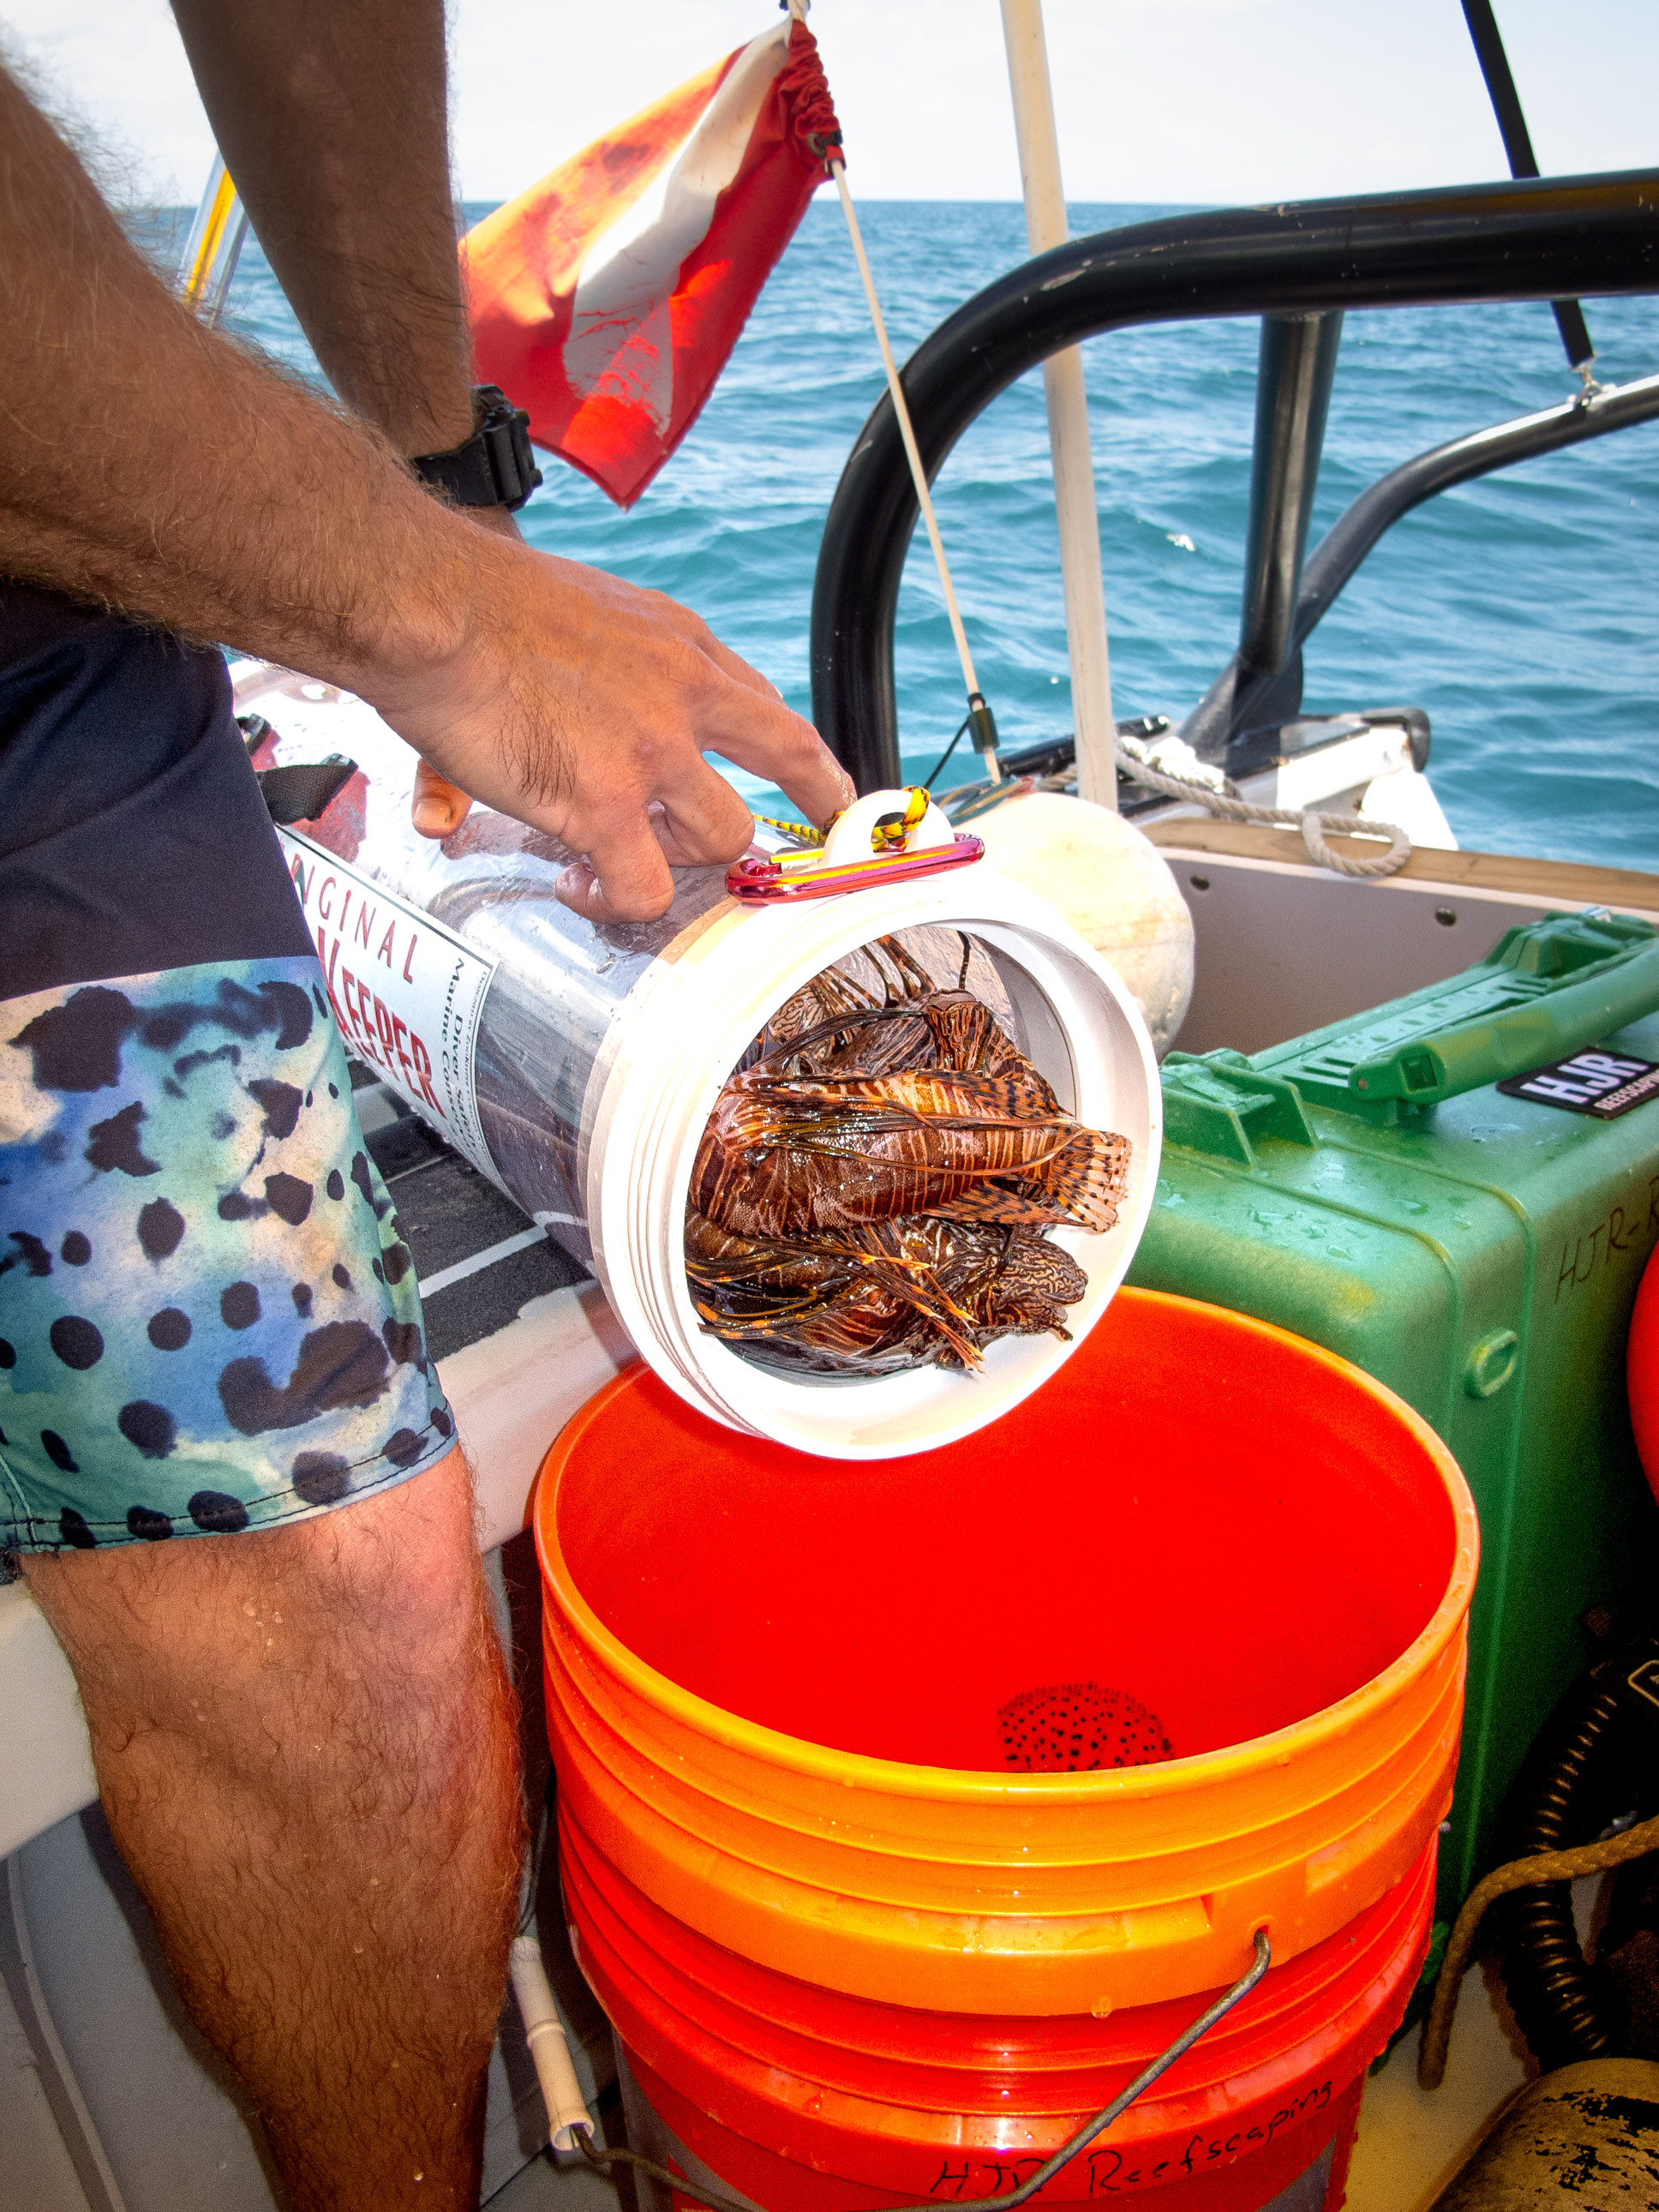 We removed over 20 Lionfish from the reef that day.